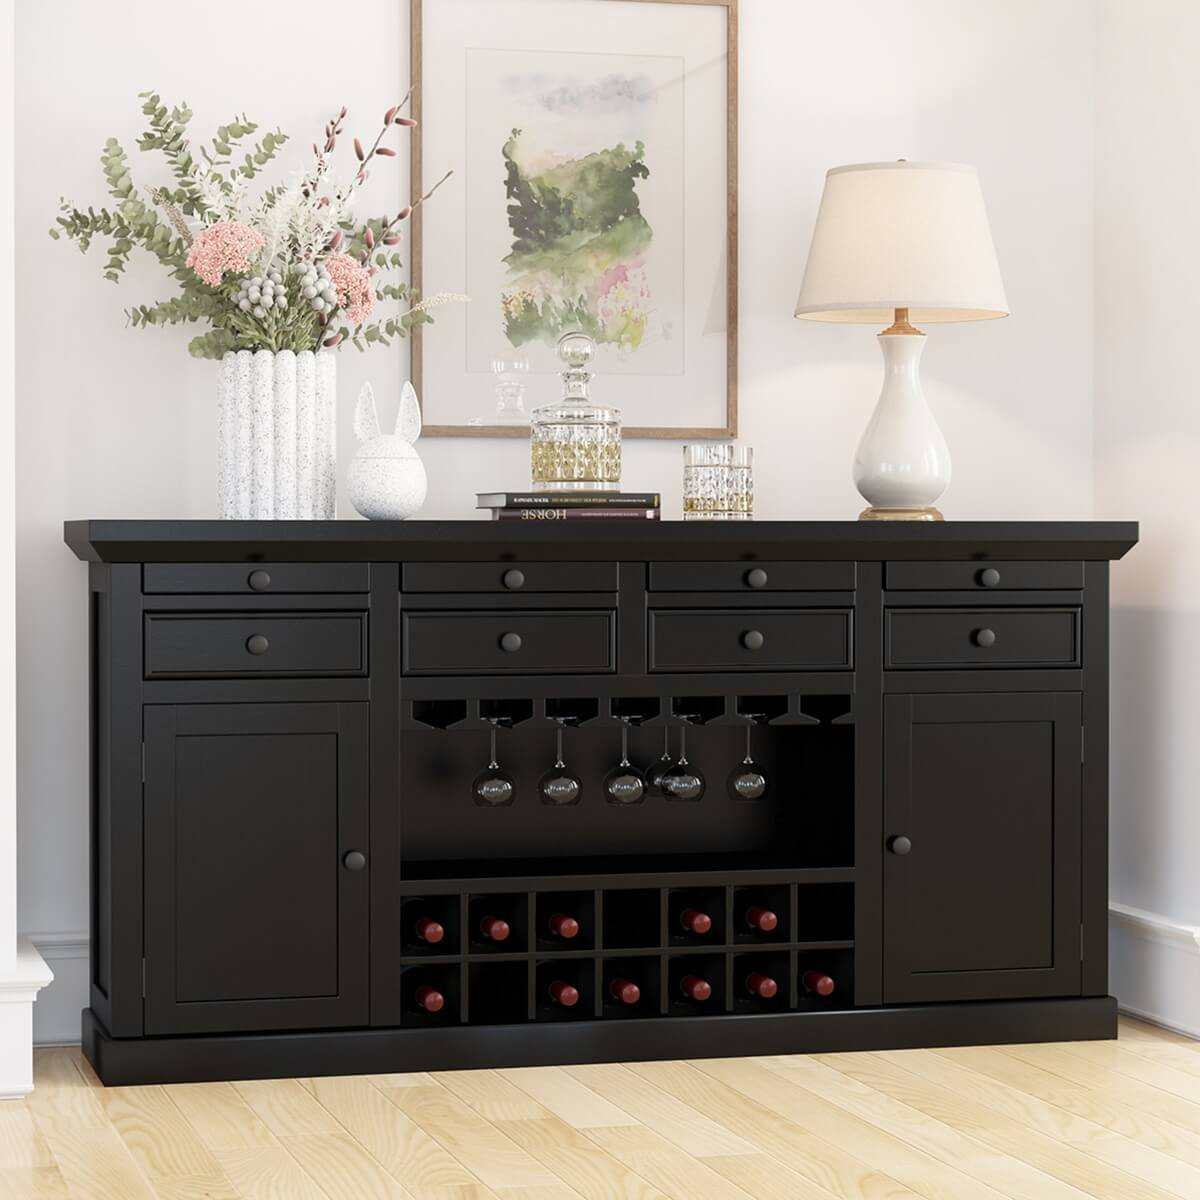 Nottingham Solid Wood Classic Wine Bar Sideboard Cabinet